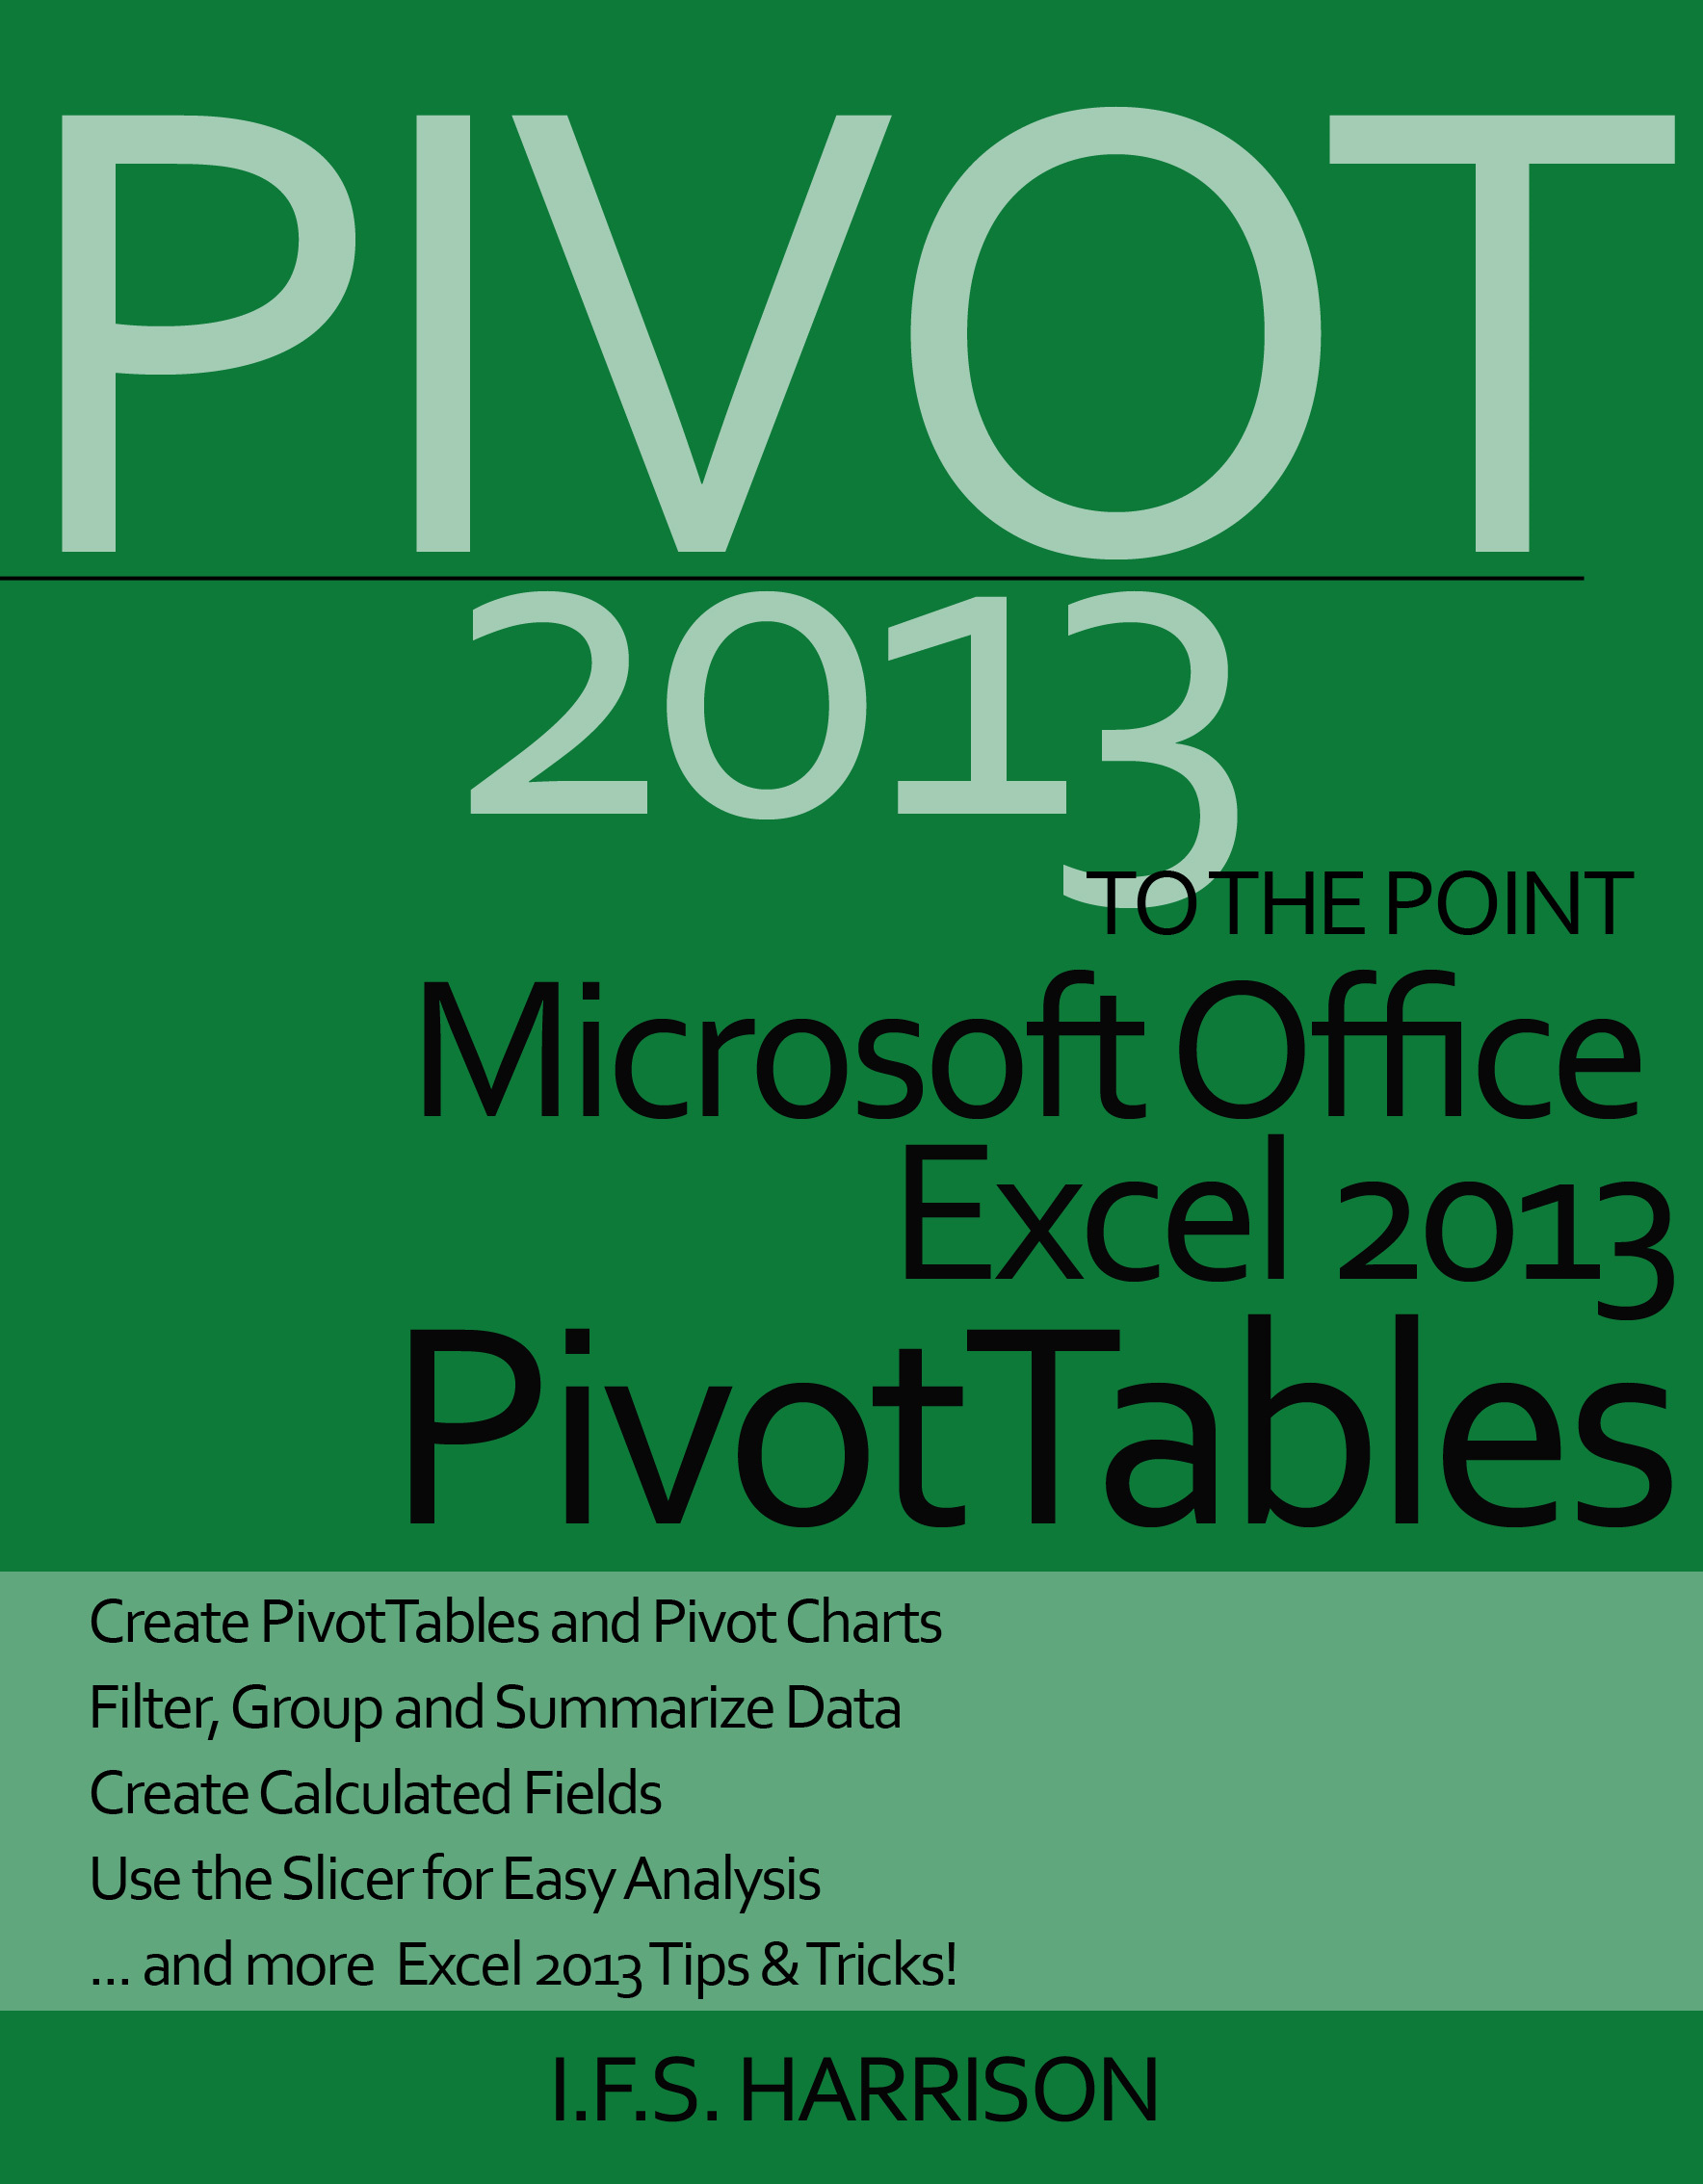 To The Point… Microsoft Office Excel 2013 PivotTables